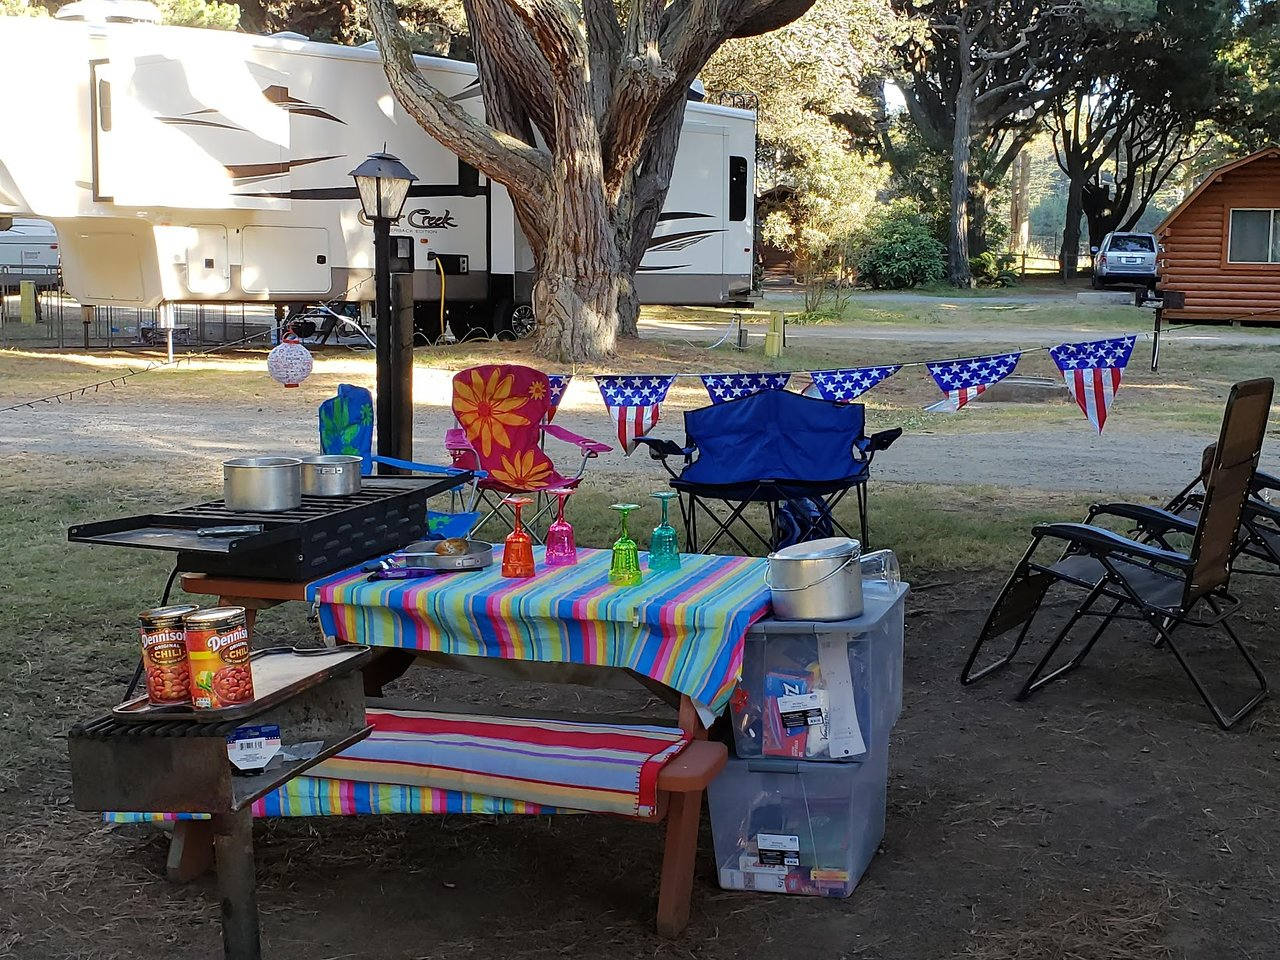 manchester beach mendocino coast koa updated 2019 campground rh tripadvisor com